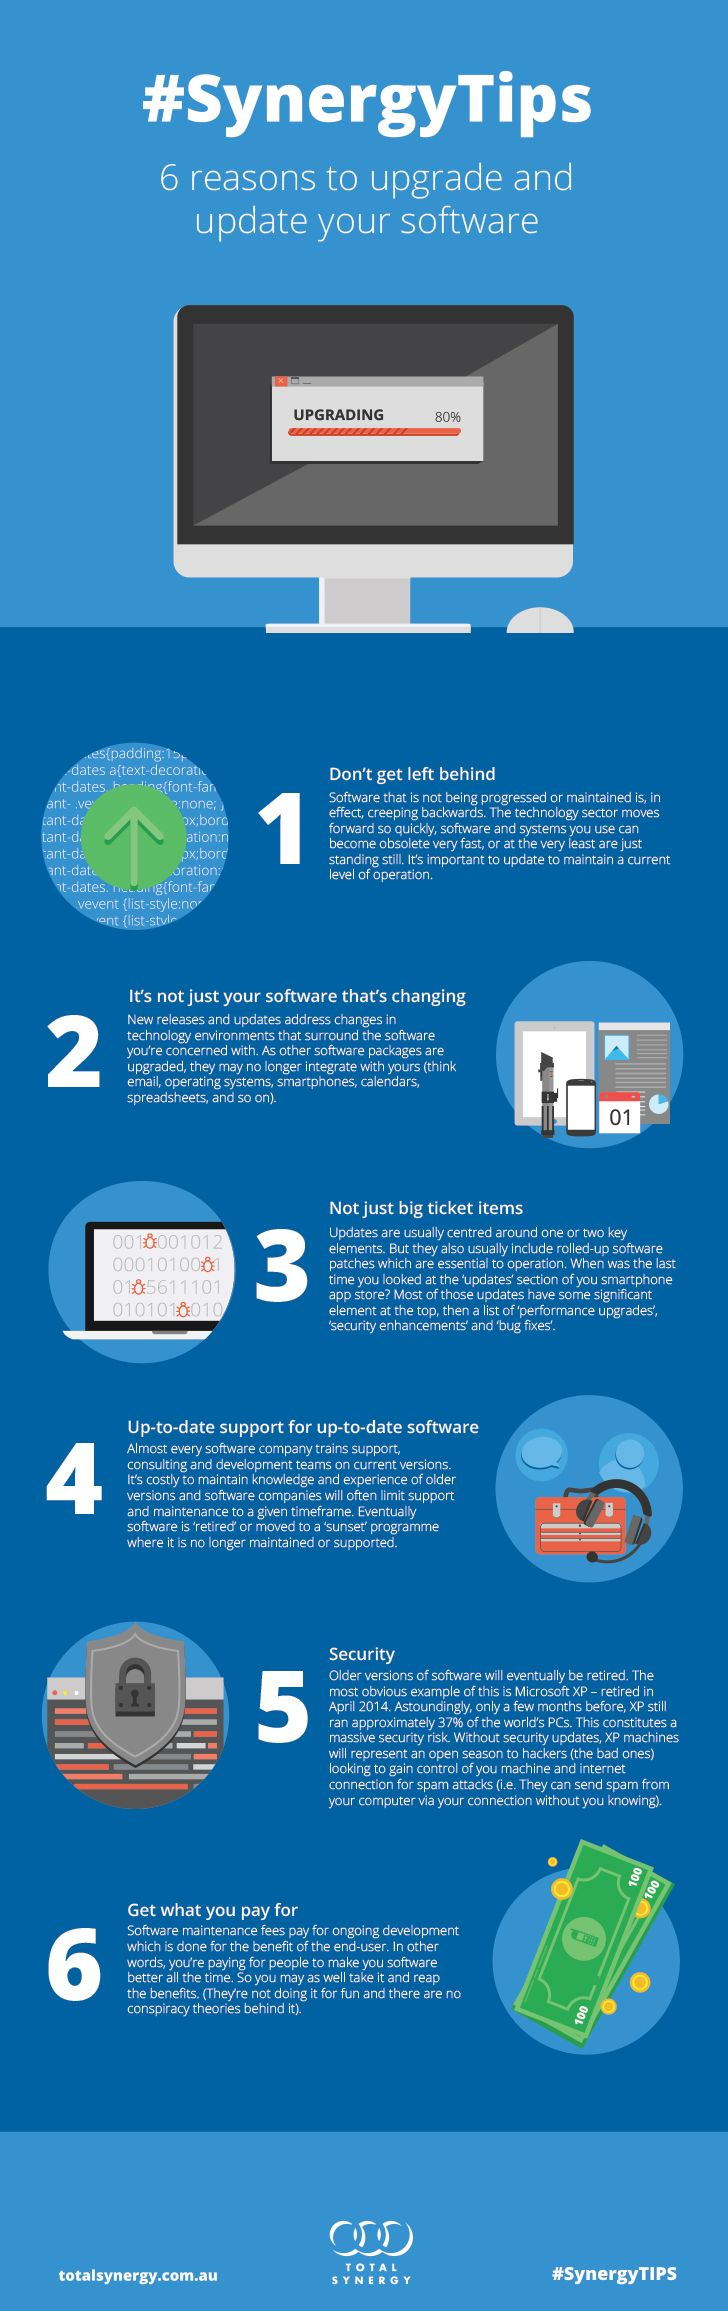 #SynergyTips - 6 reasons to upgrade and update your software infographic